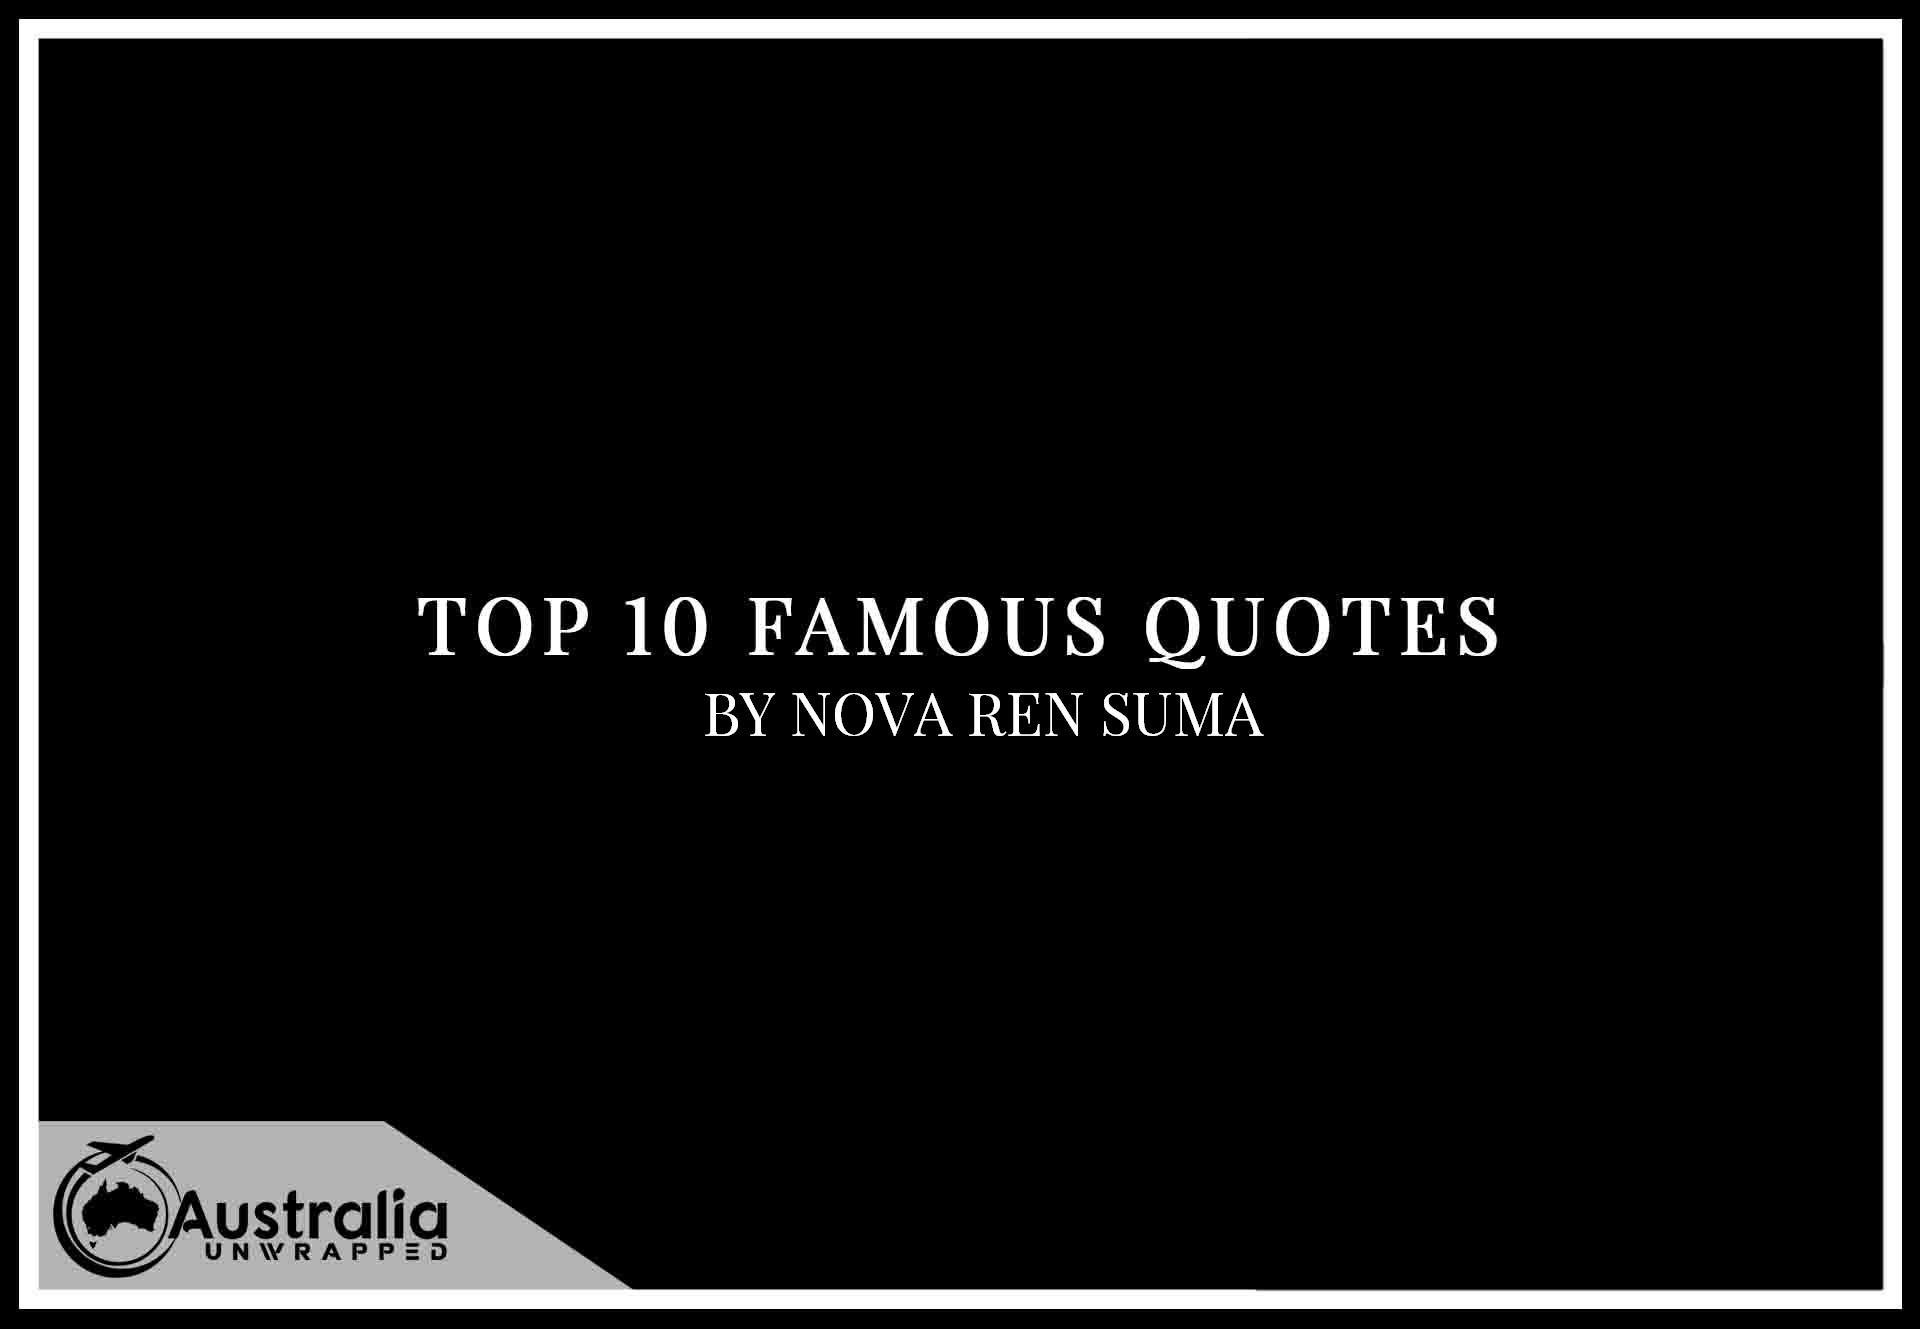 Top 10 Famous Quotes by Author Nova Ren Suma